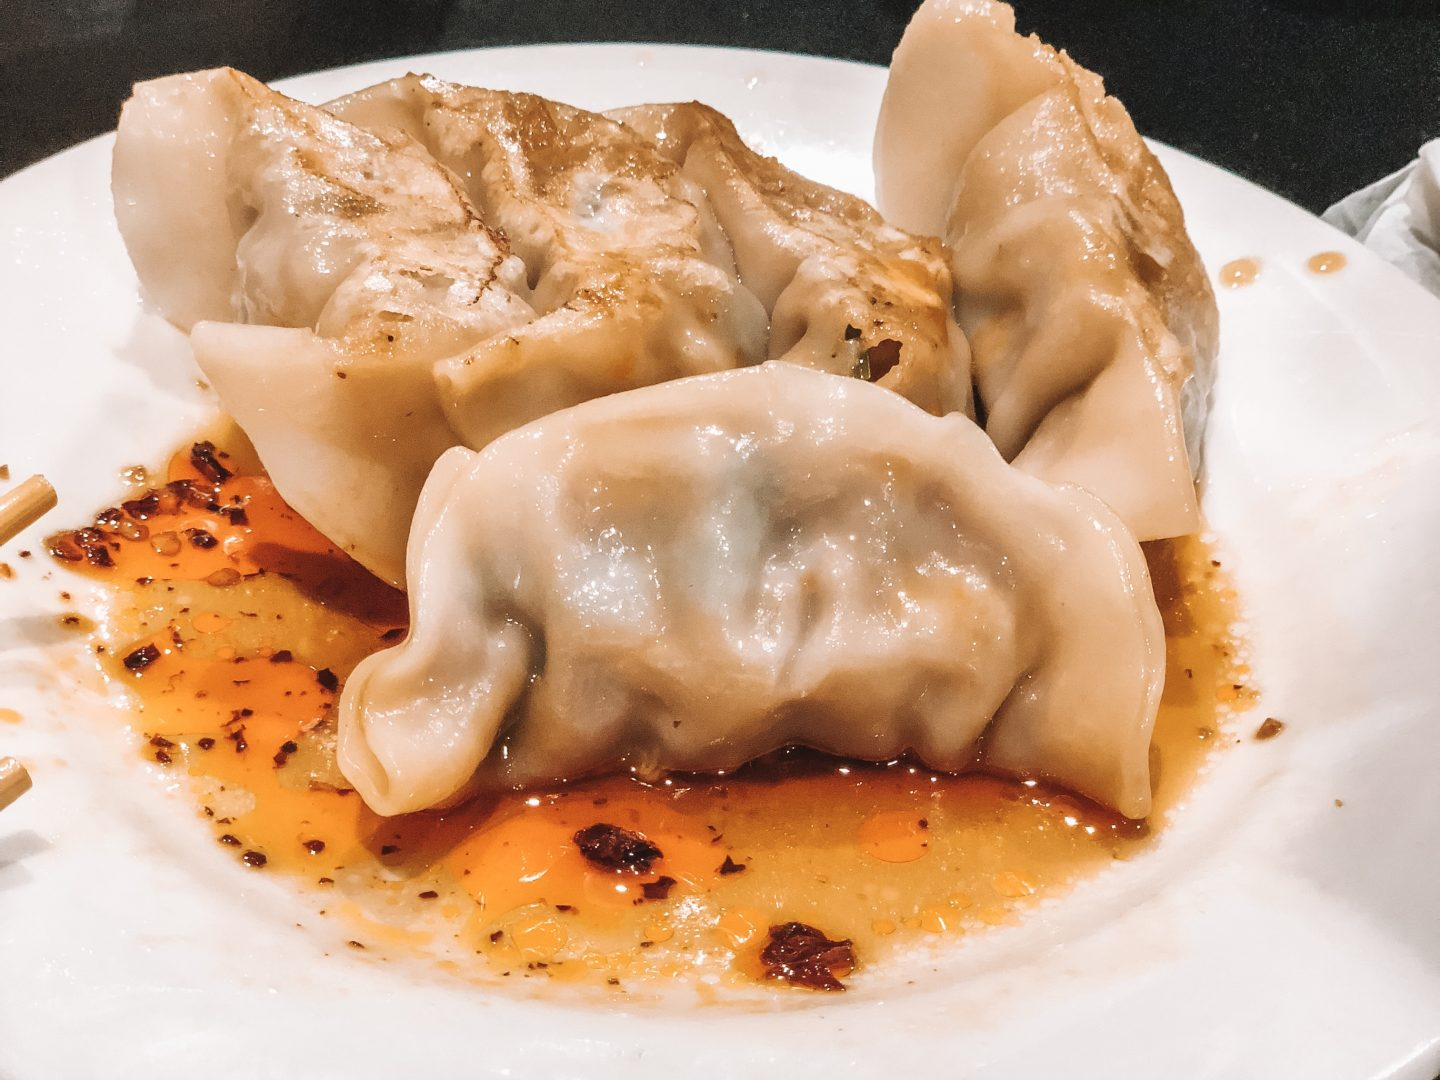 Plate of dumplings from Chinatown, NY